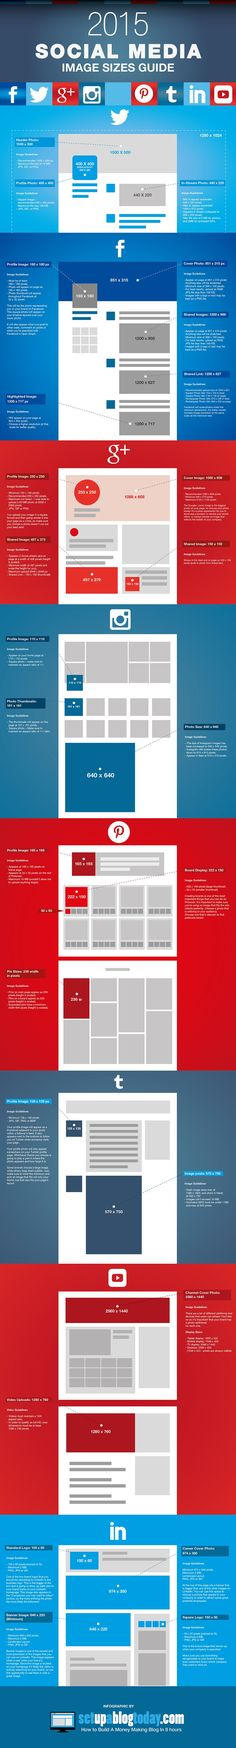 Infographic: Social Media Image Size Cheat Sheet 2015